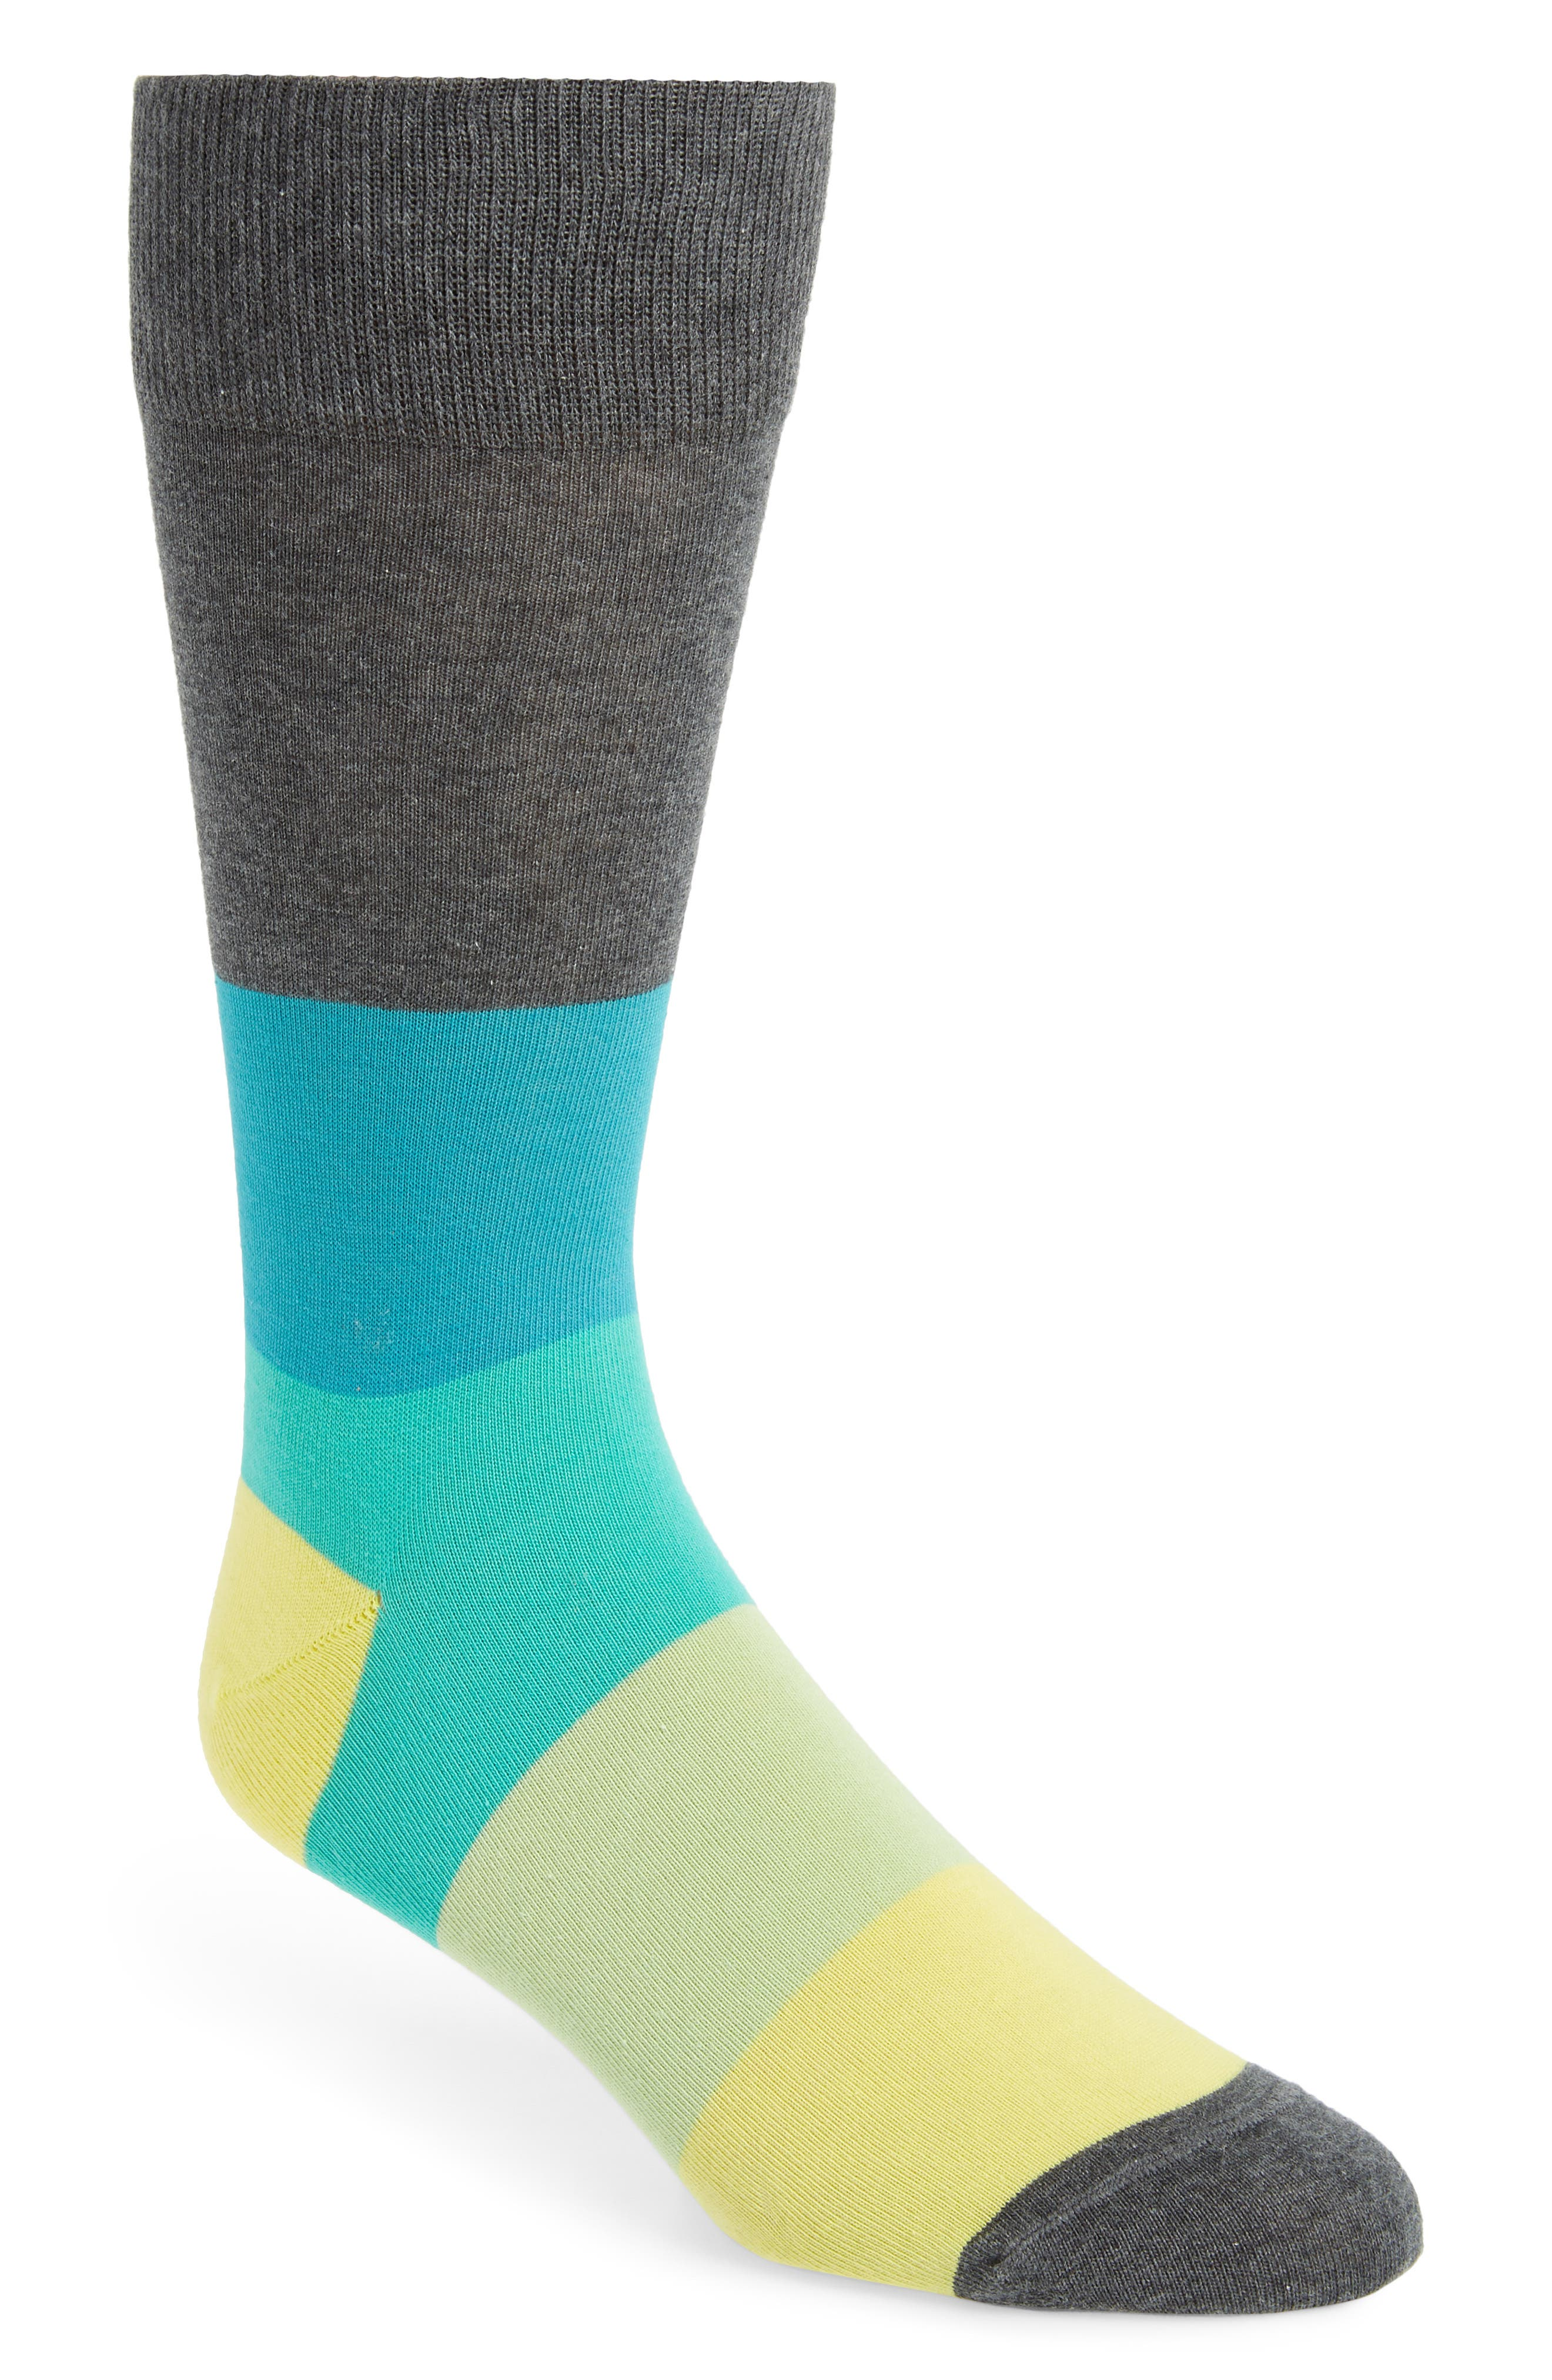 Blocked Ombré Socks,                         Main,                         color, Charcoal/ Yellow